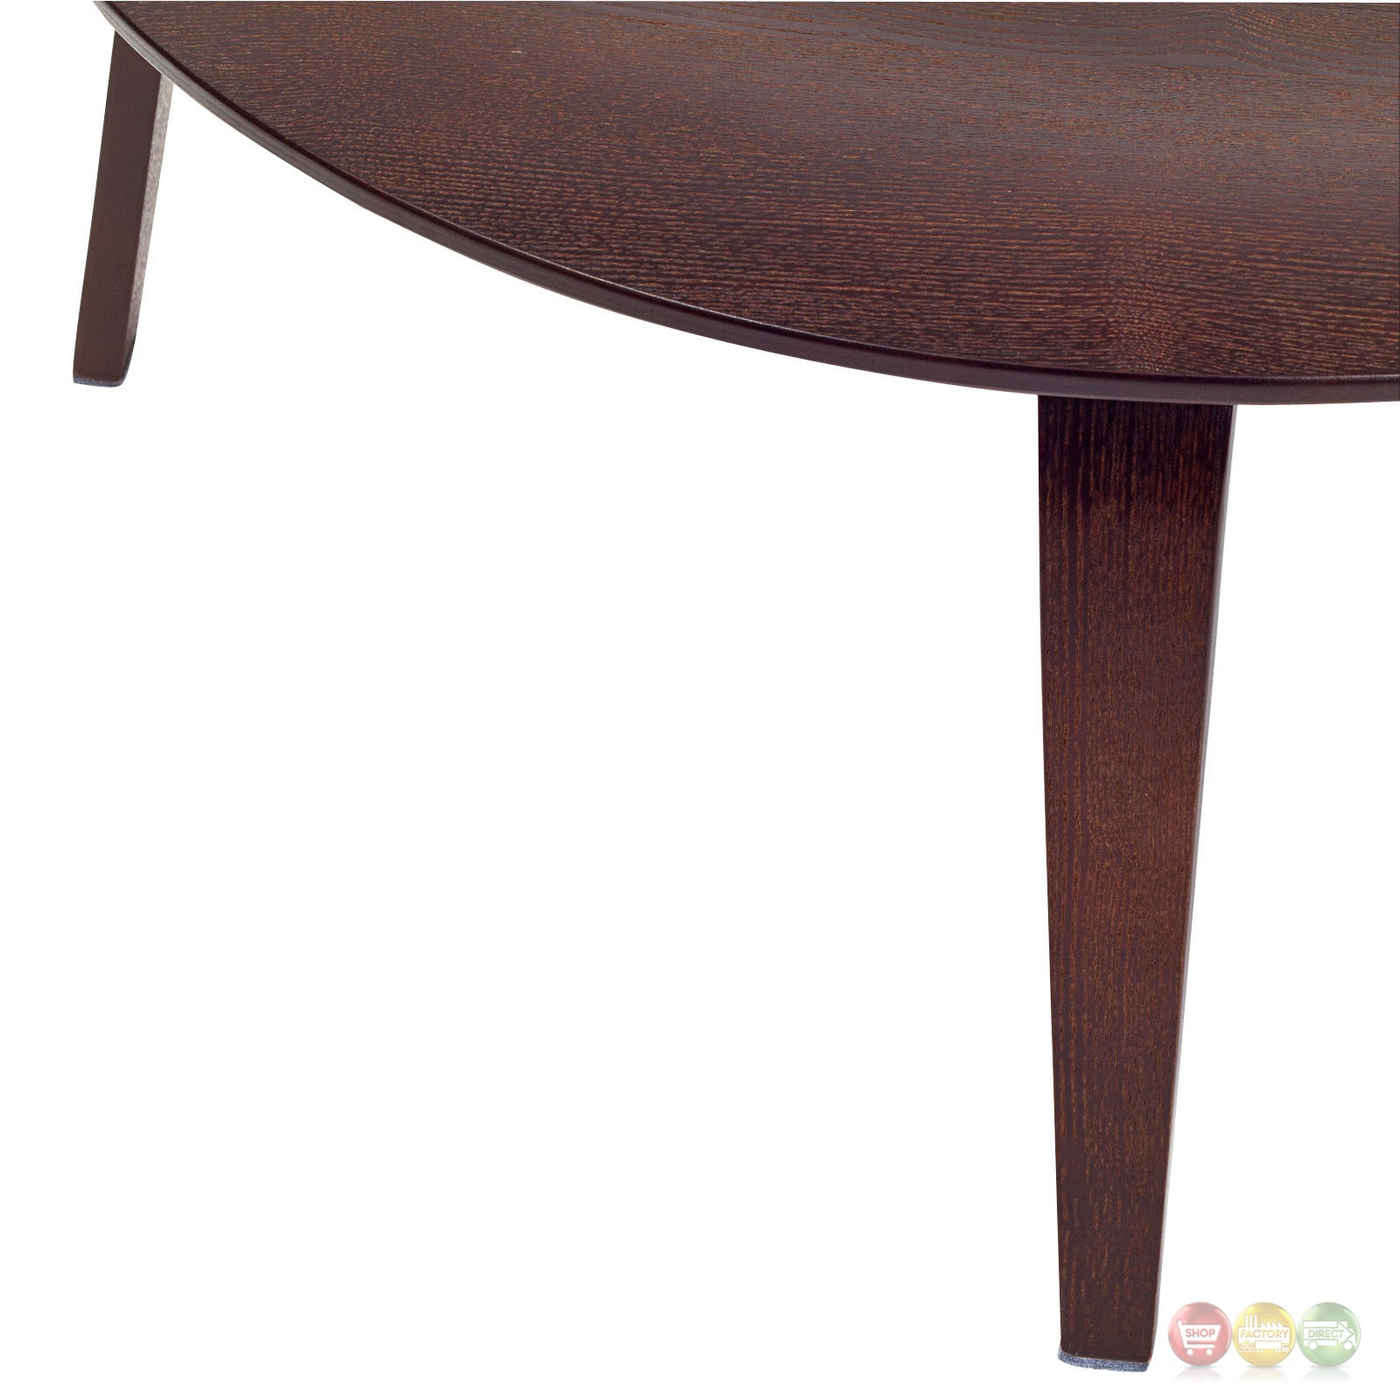 Plywood Modern Wood Grain Panel Round Coffee Table Wenge